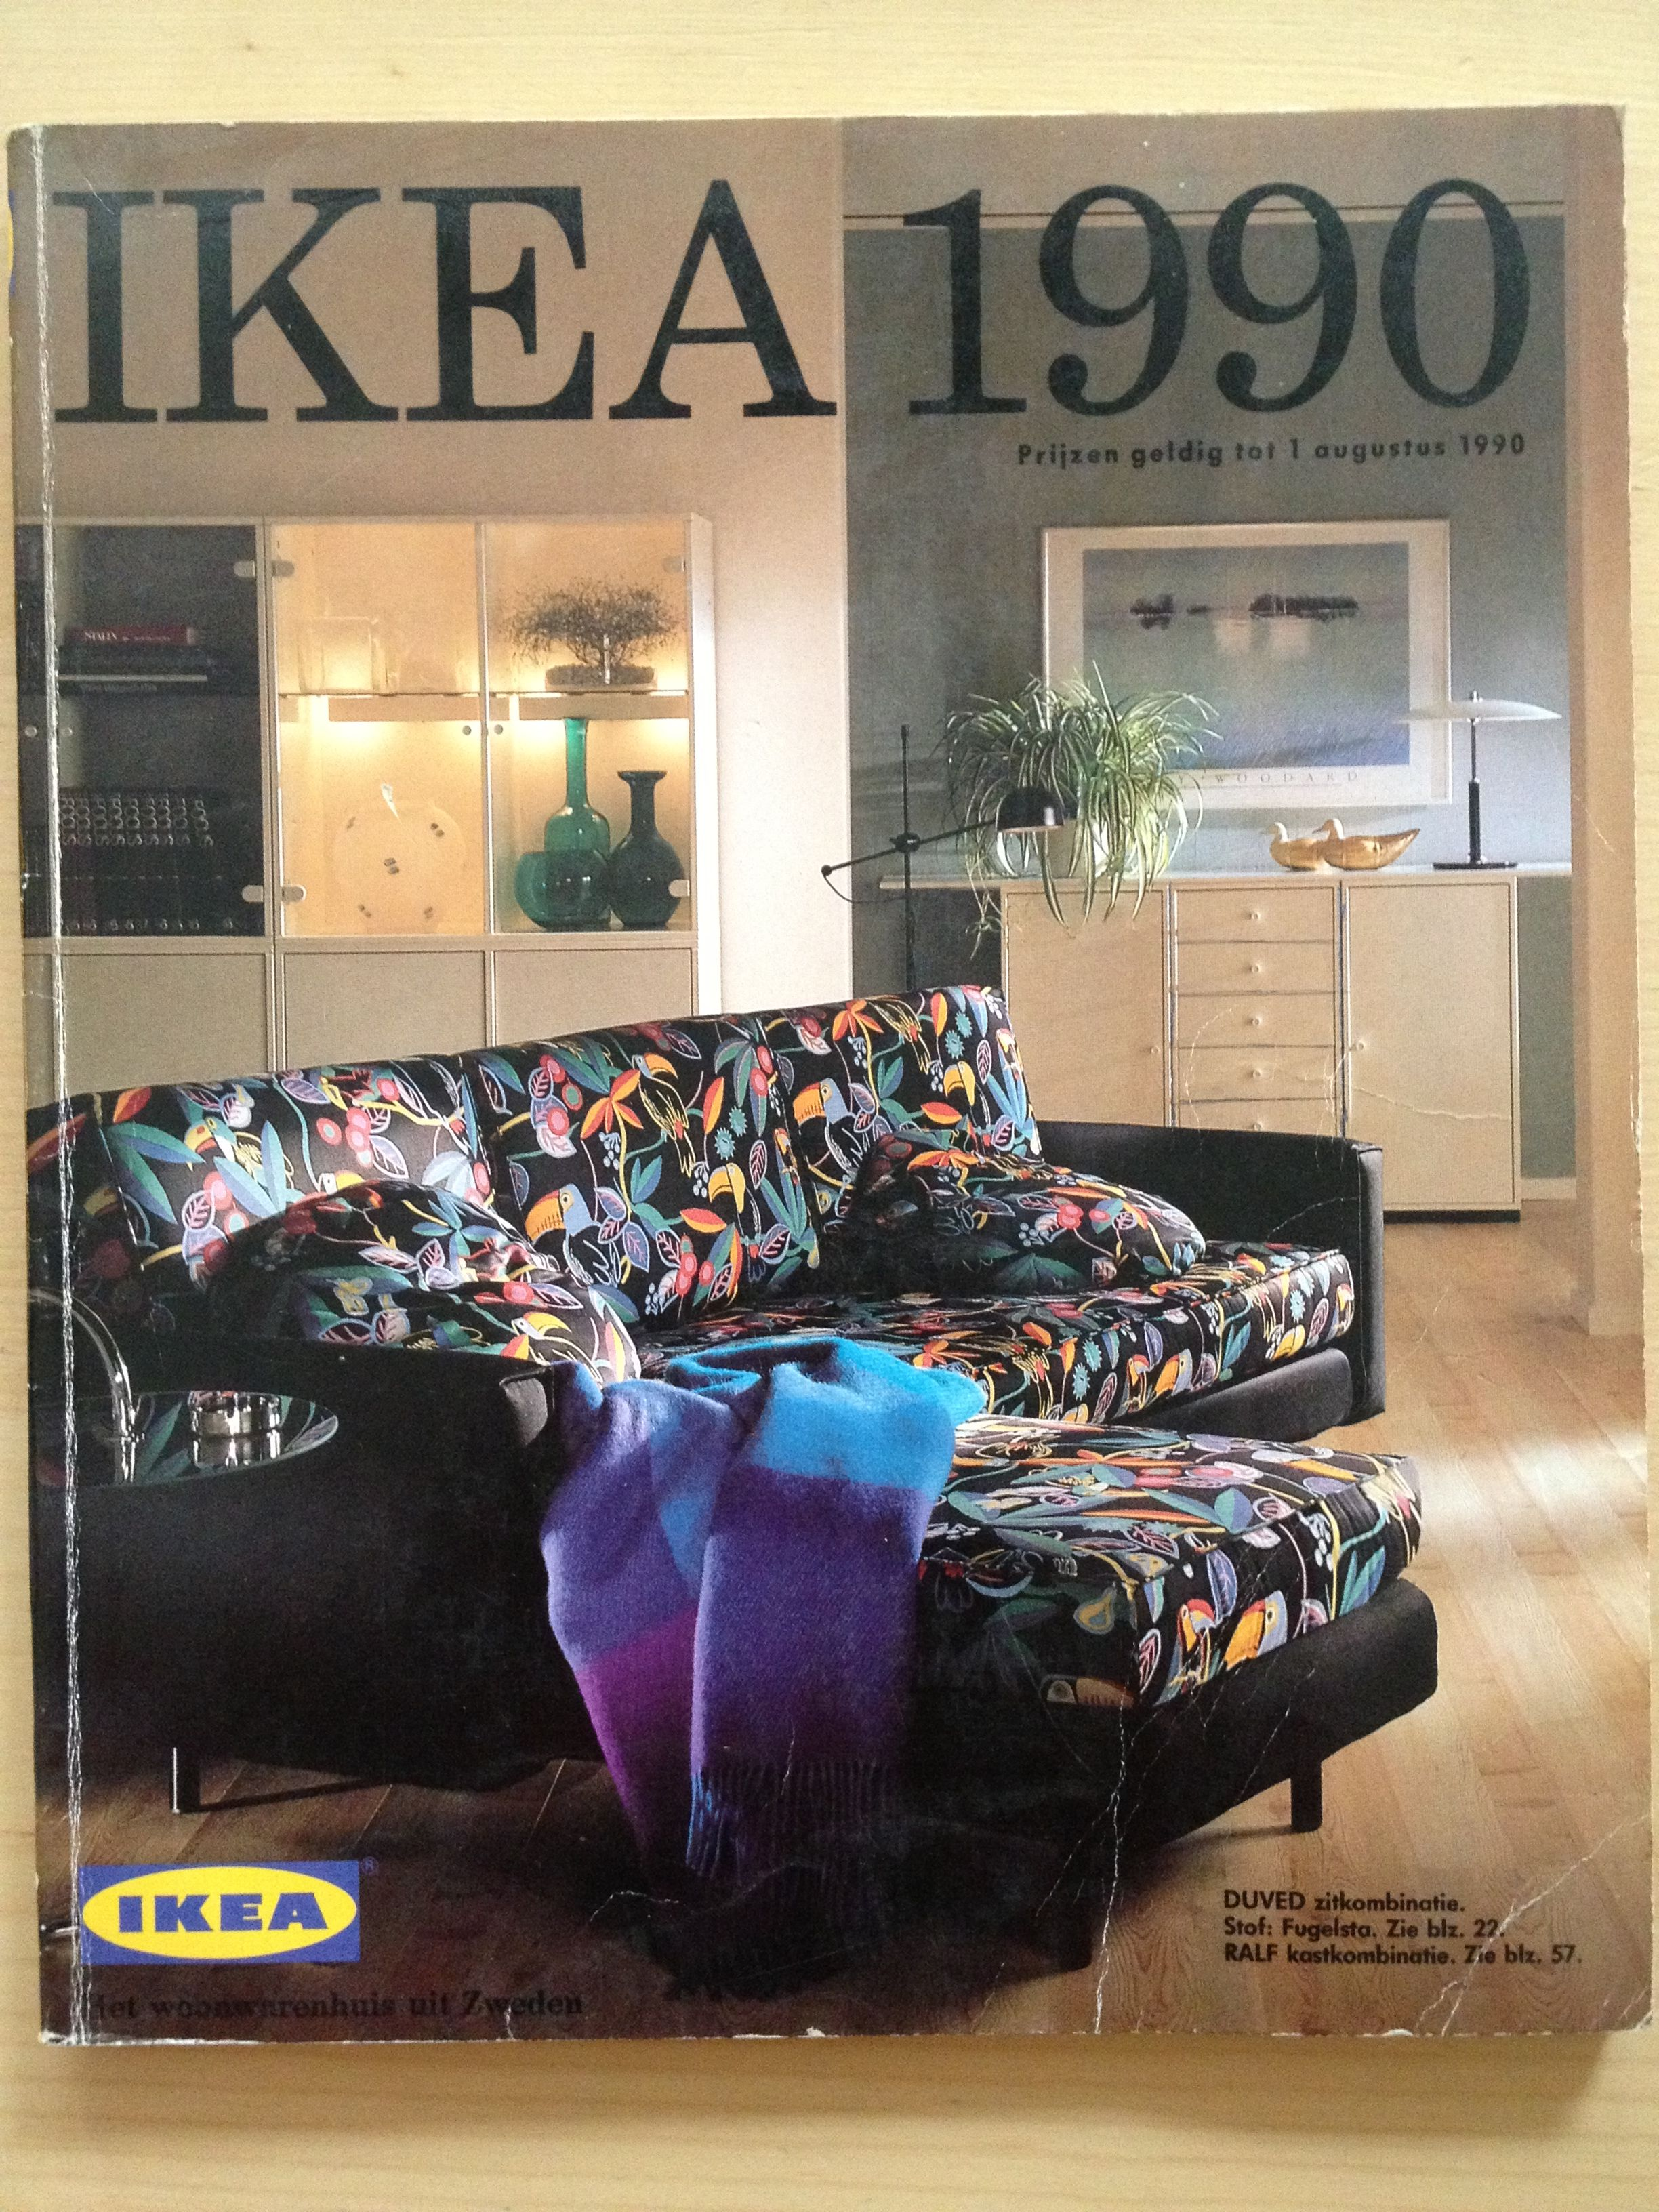 IKEA catalogue 1990. IKEA catalogue 2004   DESIGN FOR EVERYONE   Pinterest